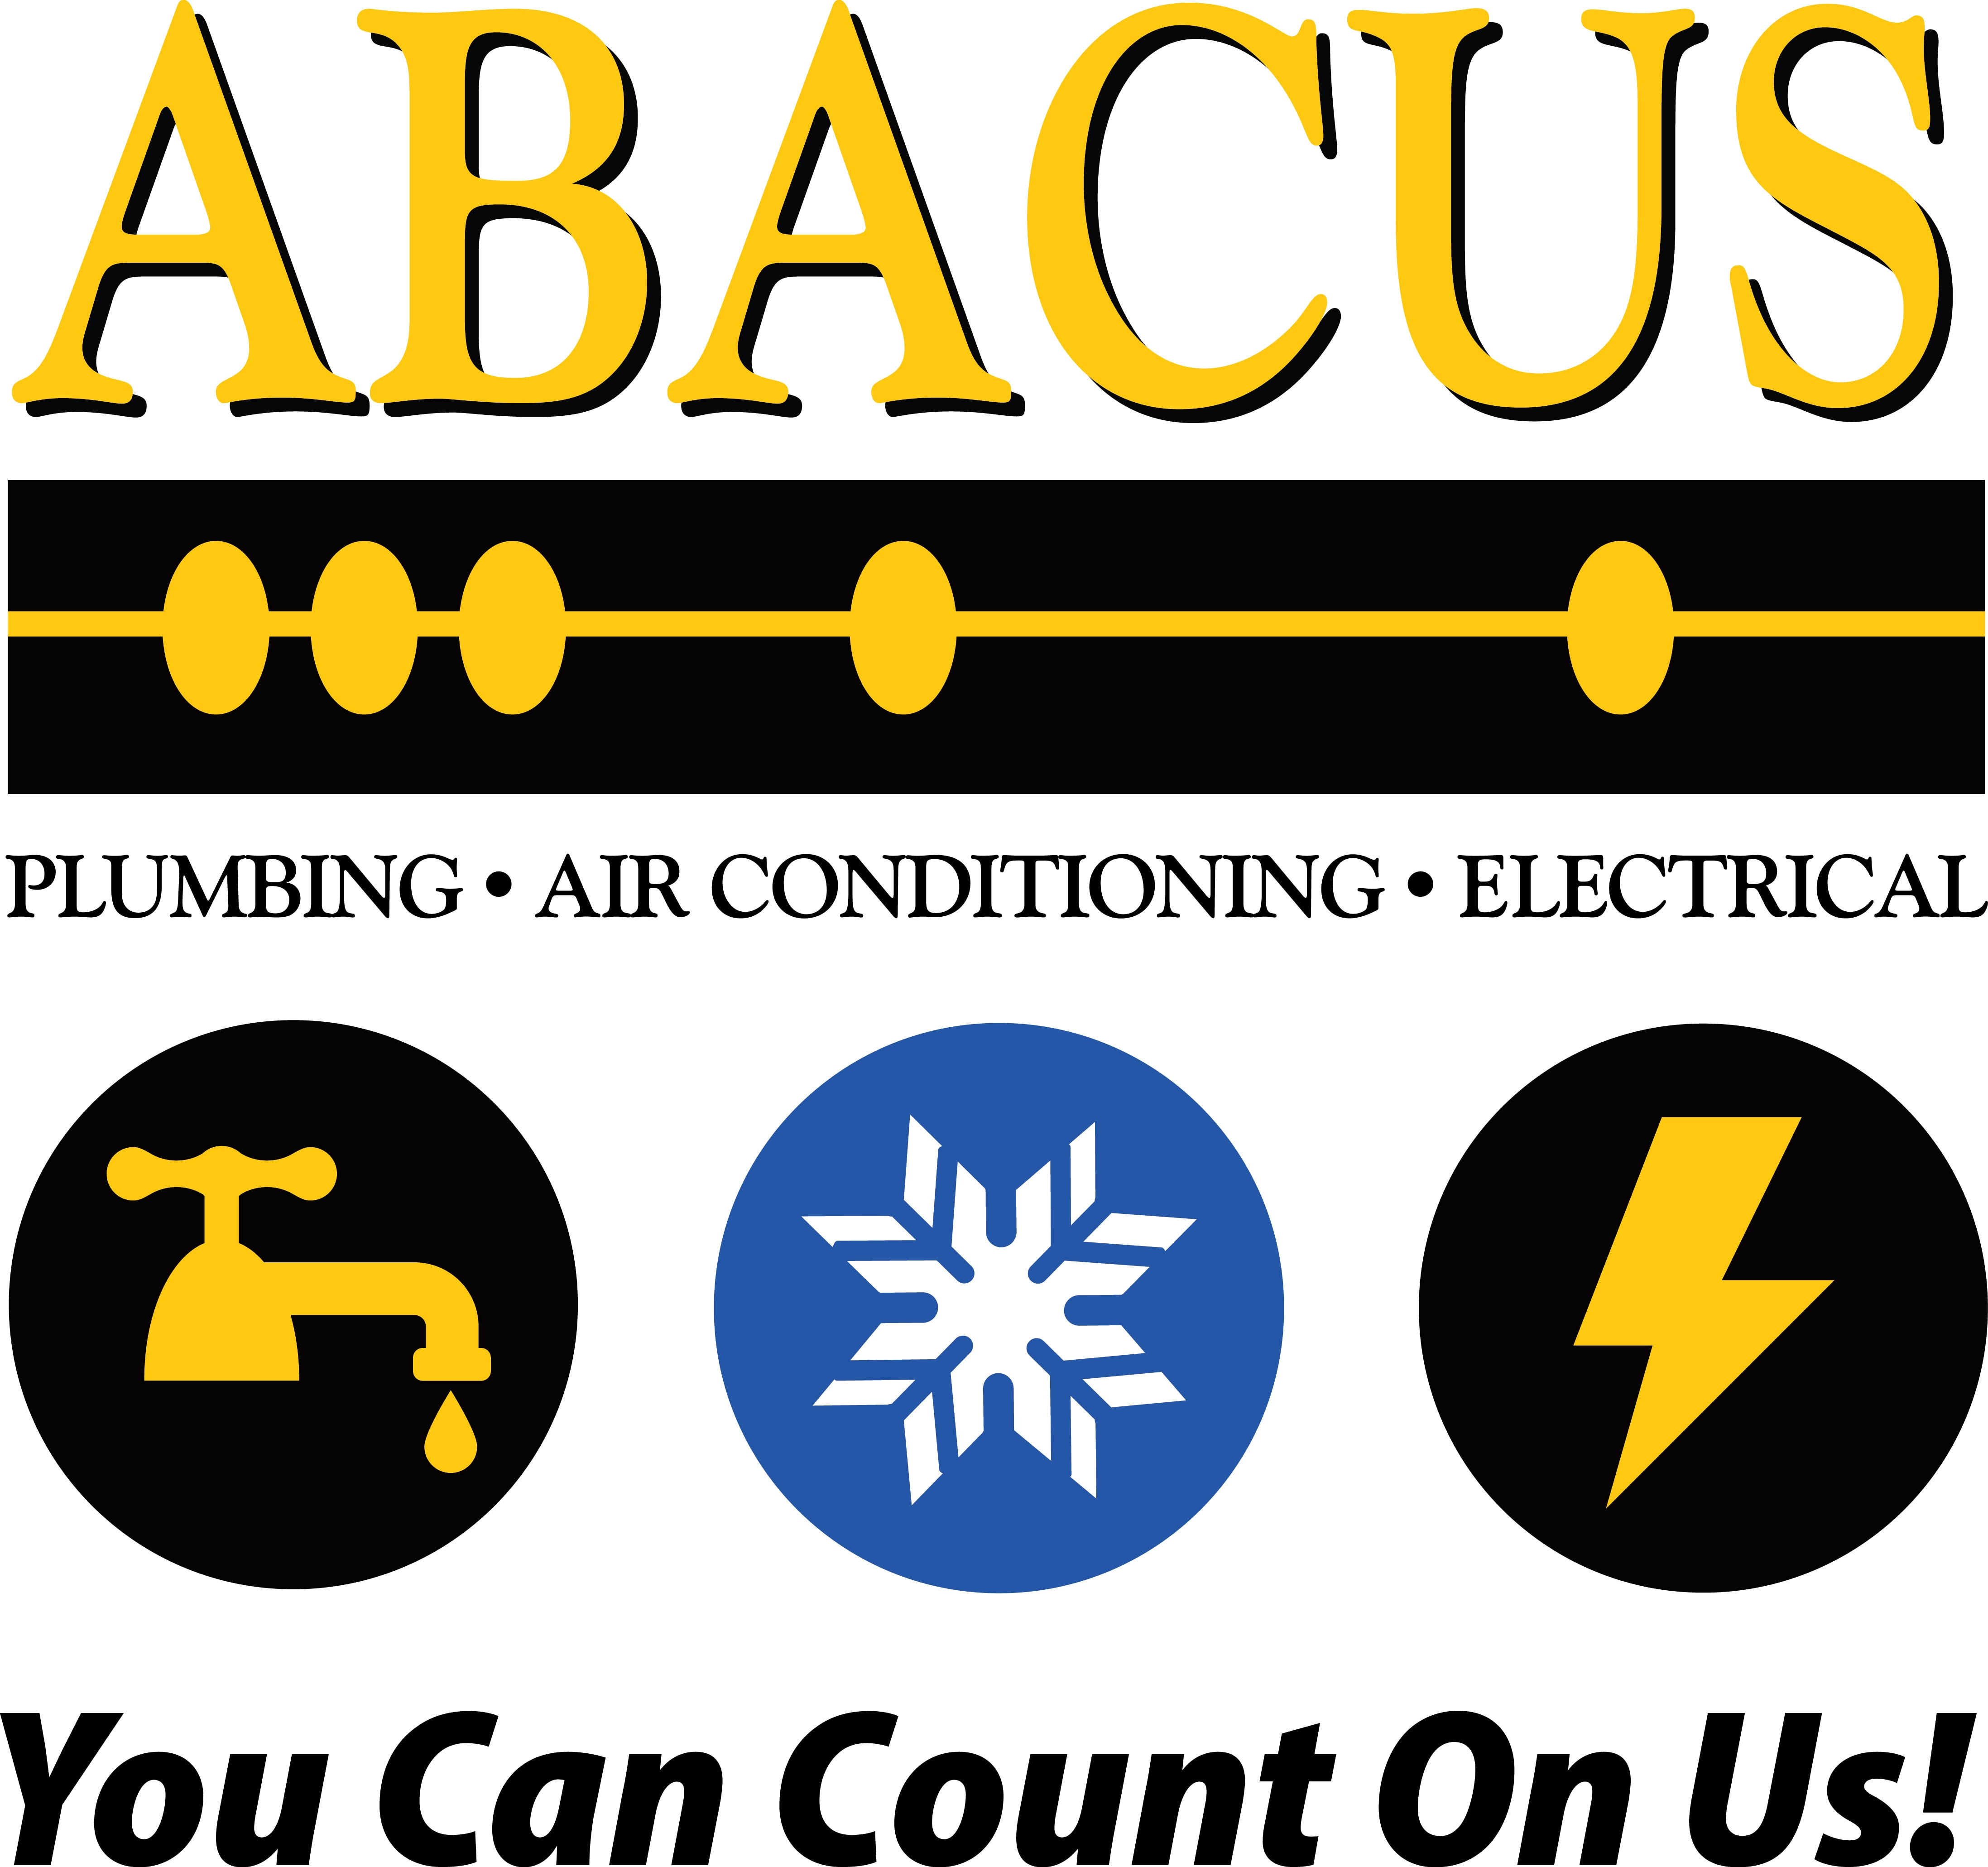 Abacus Plumbing Air Conditioning & Electrical logo